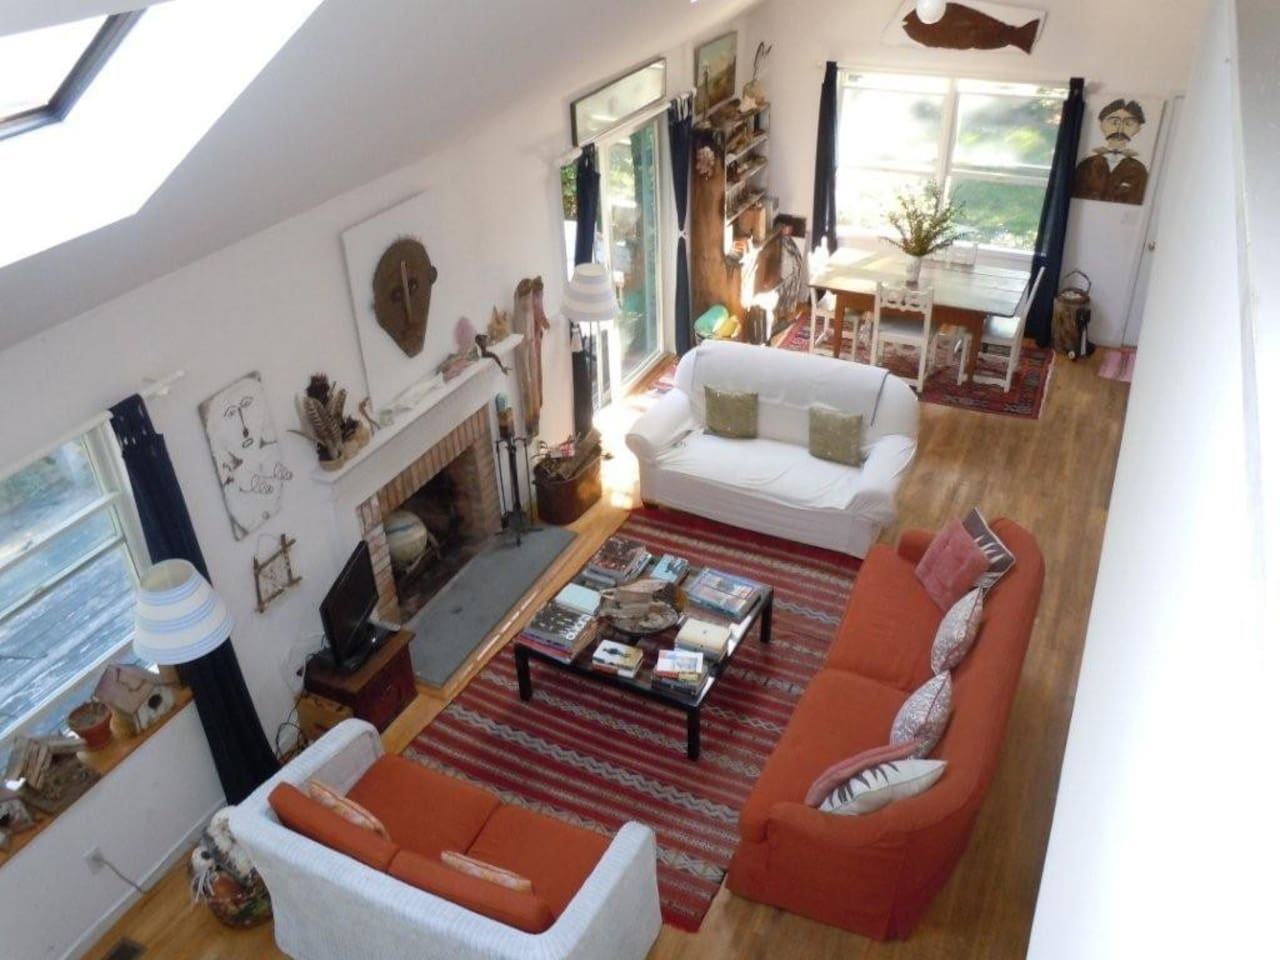 Living room and dining room, open plan, airy with skylights and sliding doors to deck